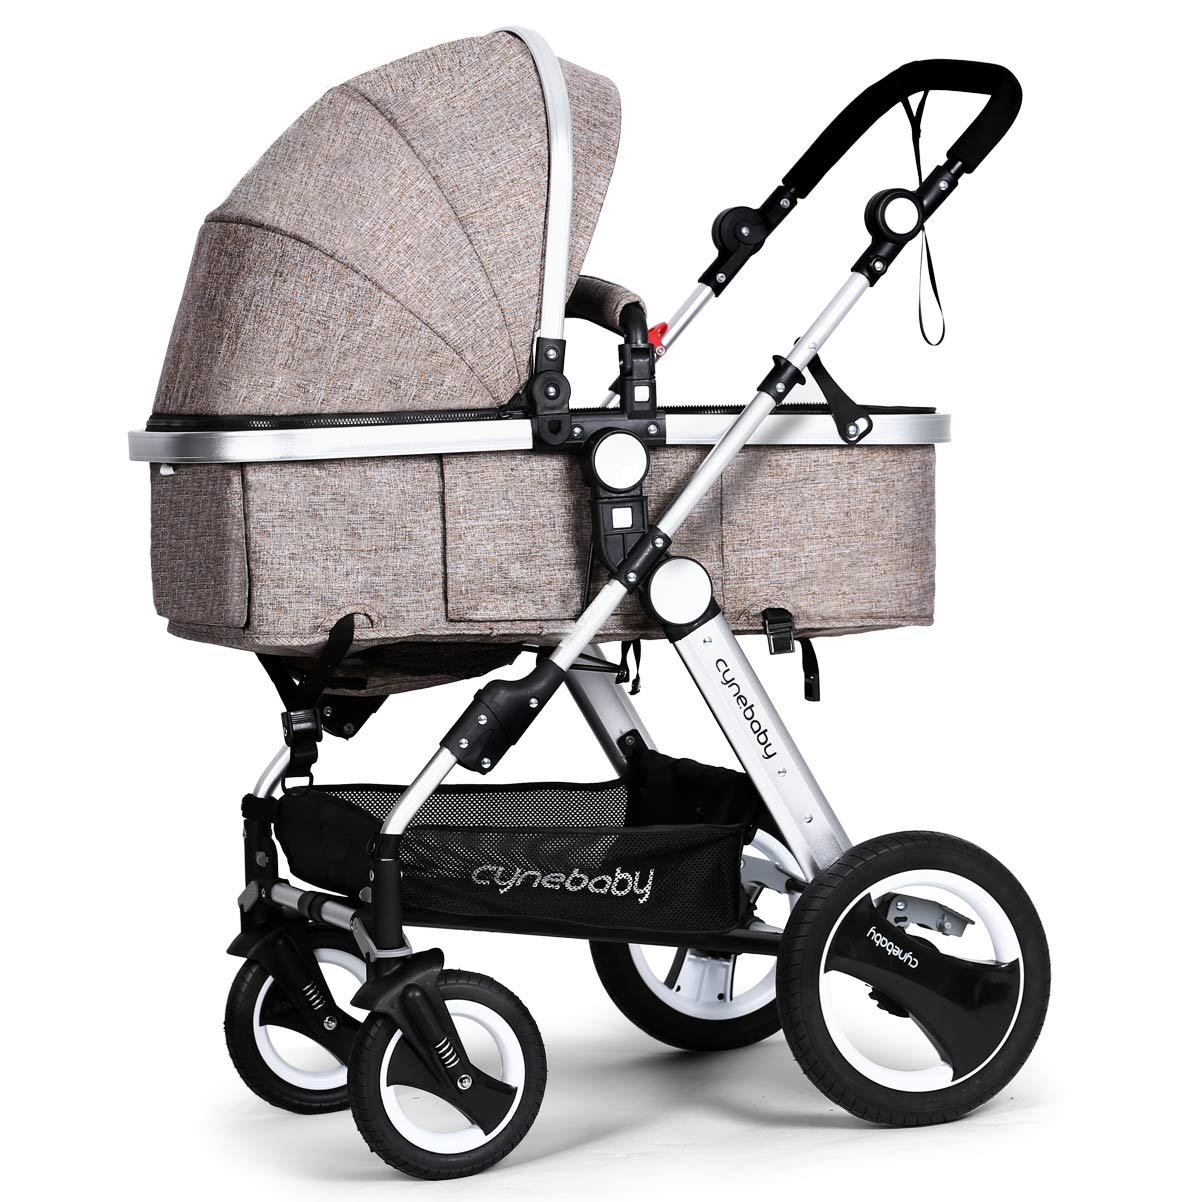 Infant Toddler Baby Stroller Carriage - Cynebaby Compact Pram Strollers add Tray (Khaki) by cynebaby (Image #2)